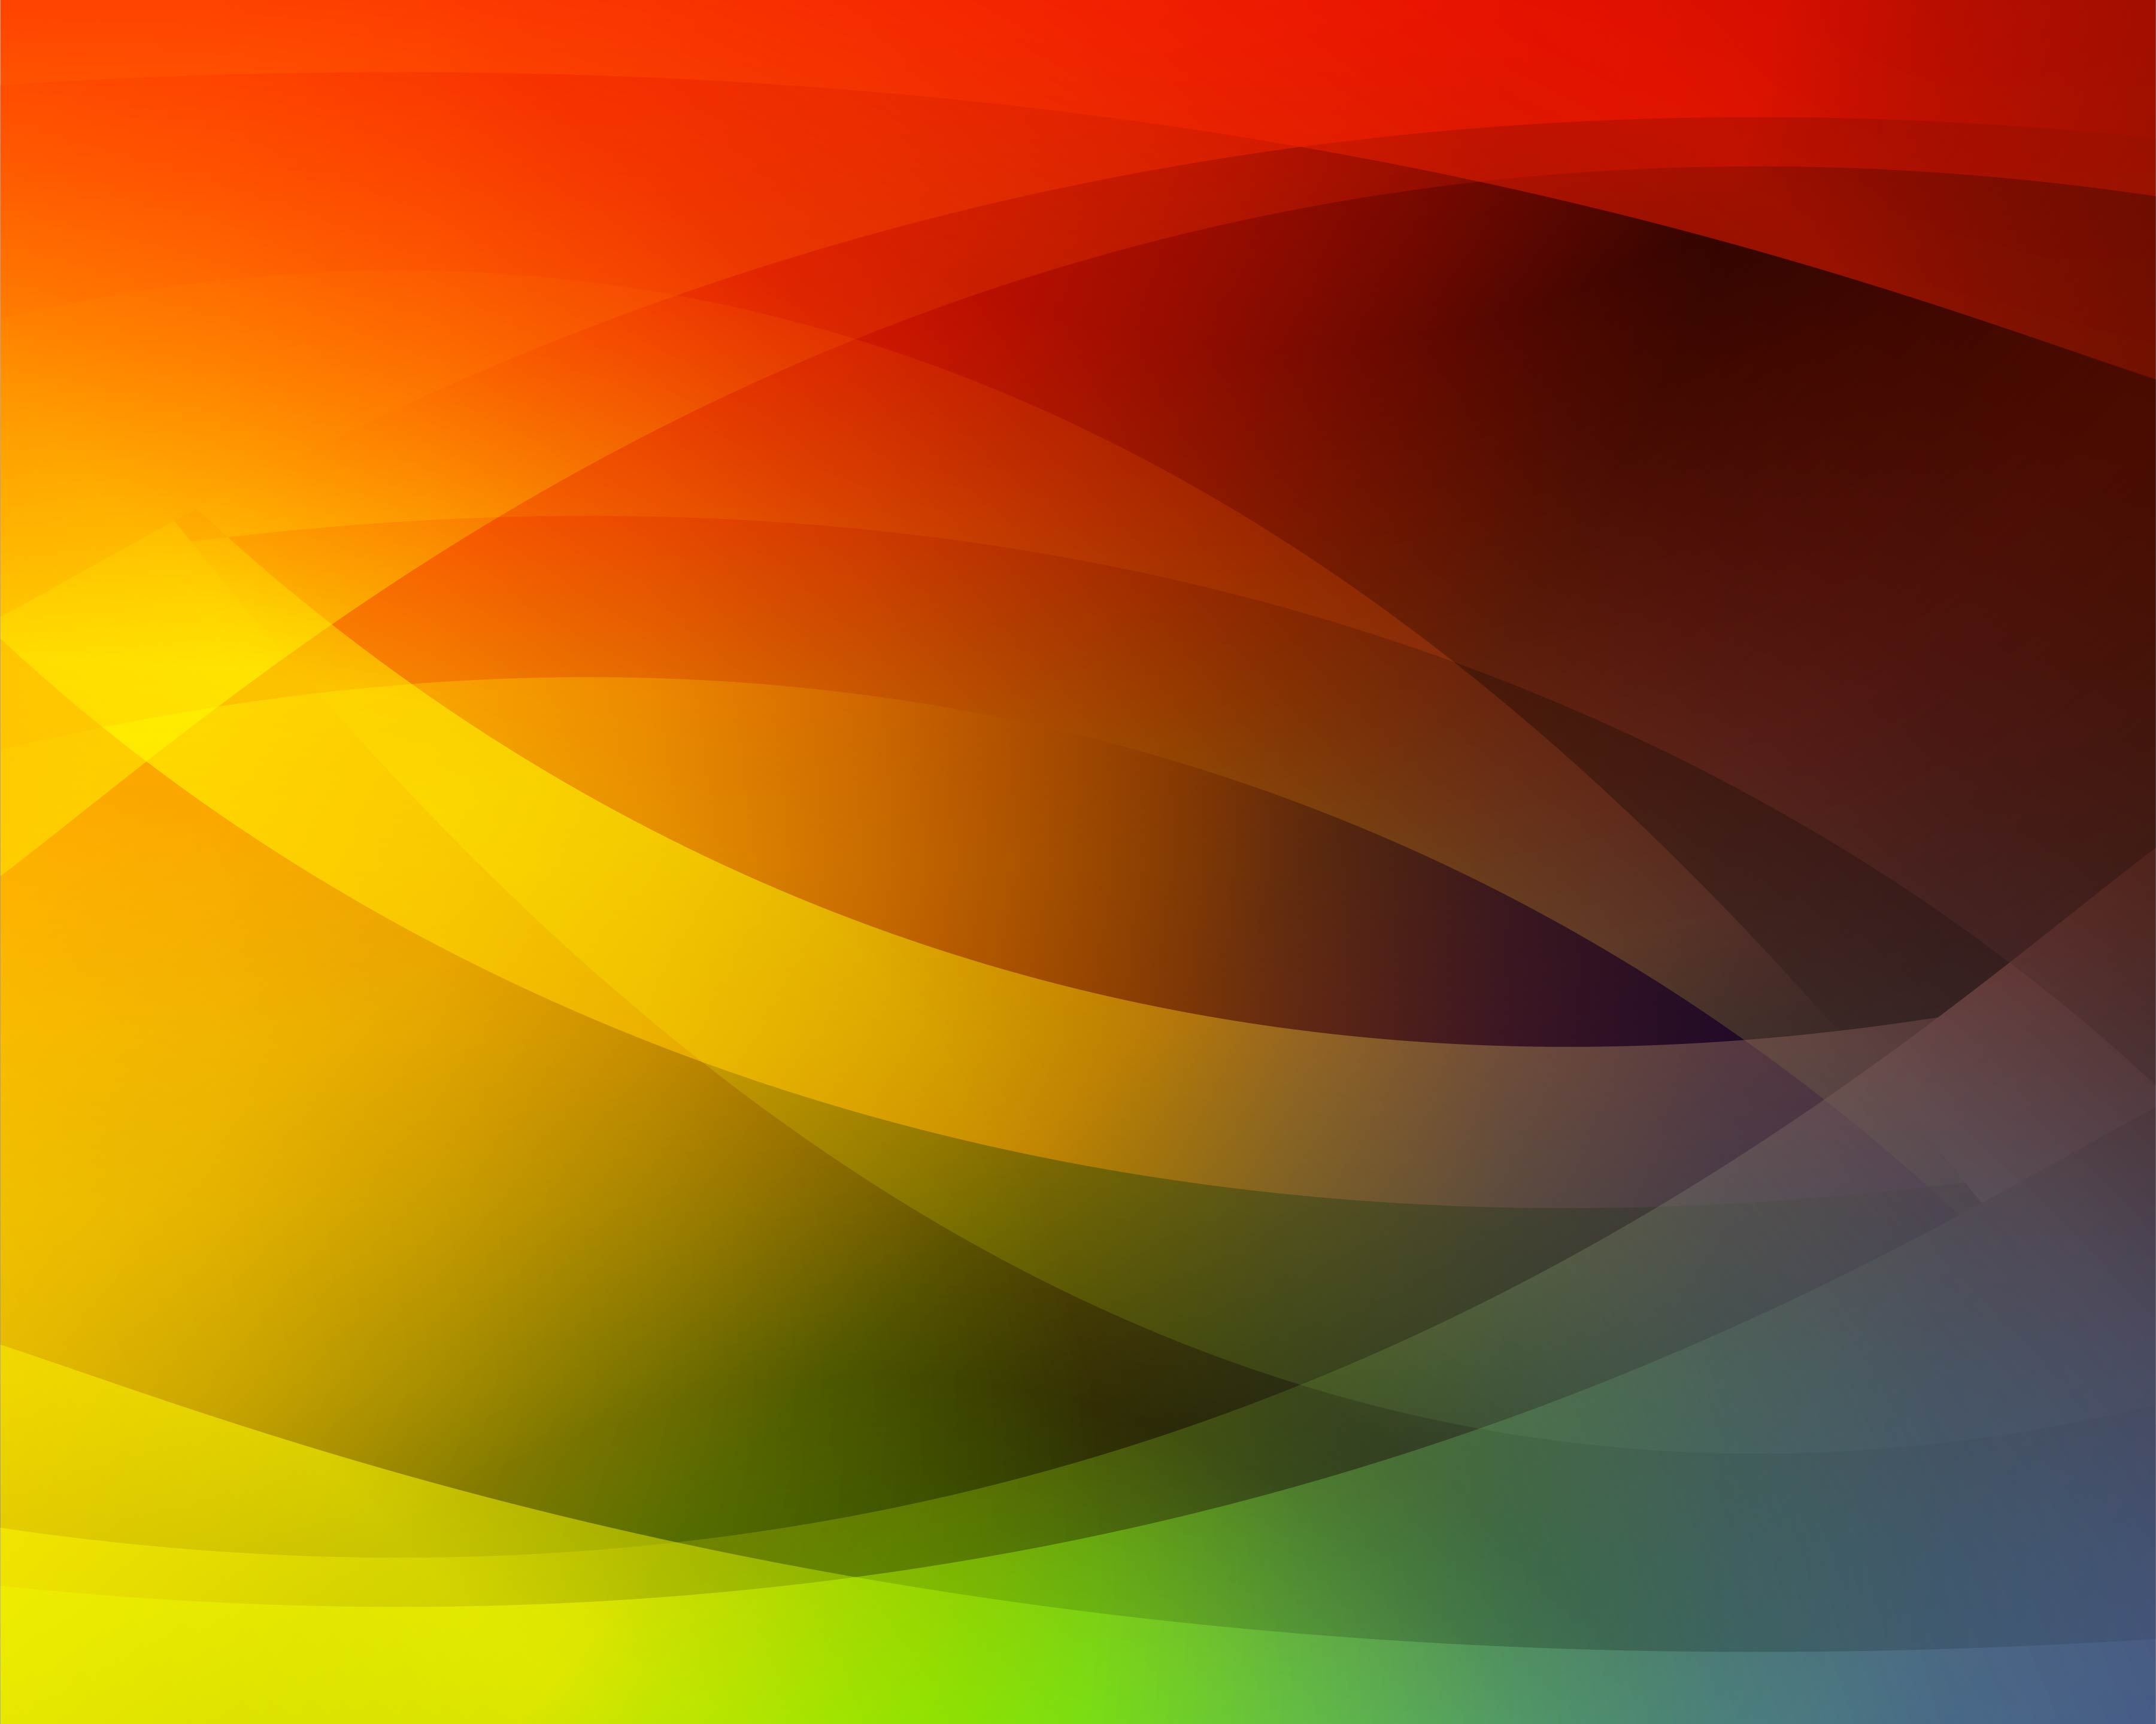 Abstract Volleyball On Colorful Wave Background: Abstract Colorful Wave Background Vector